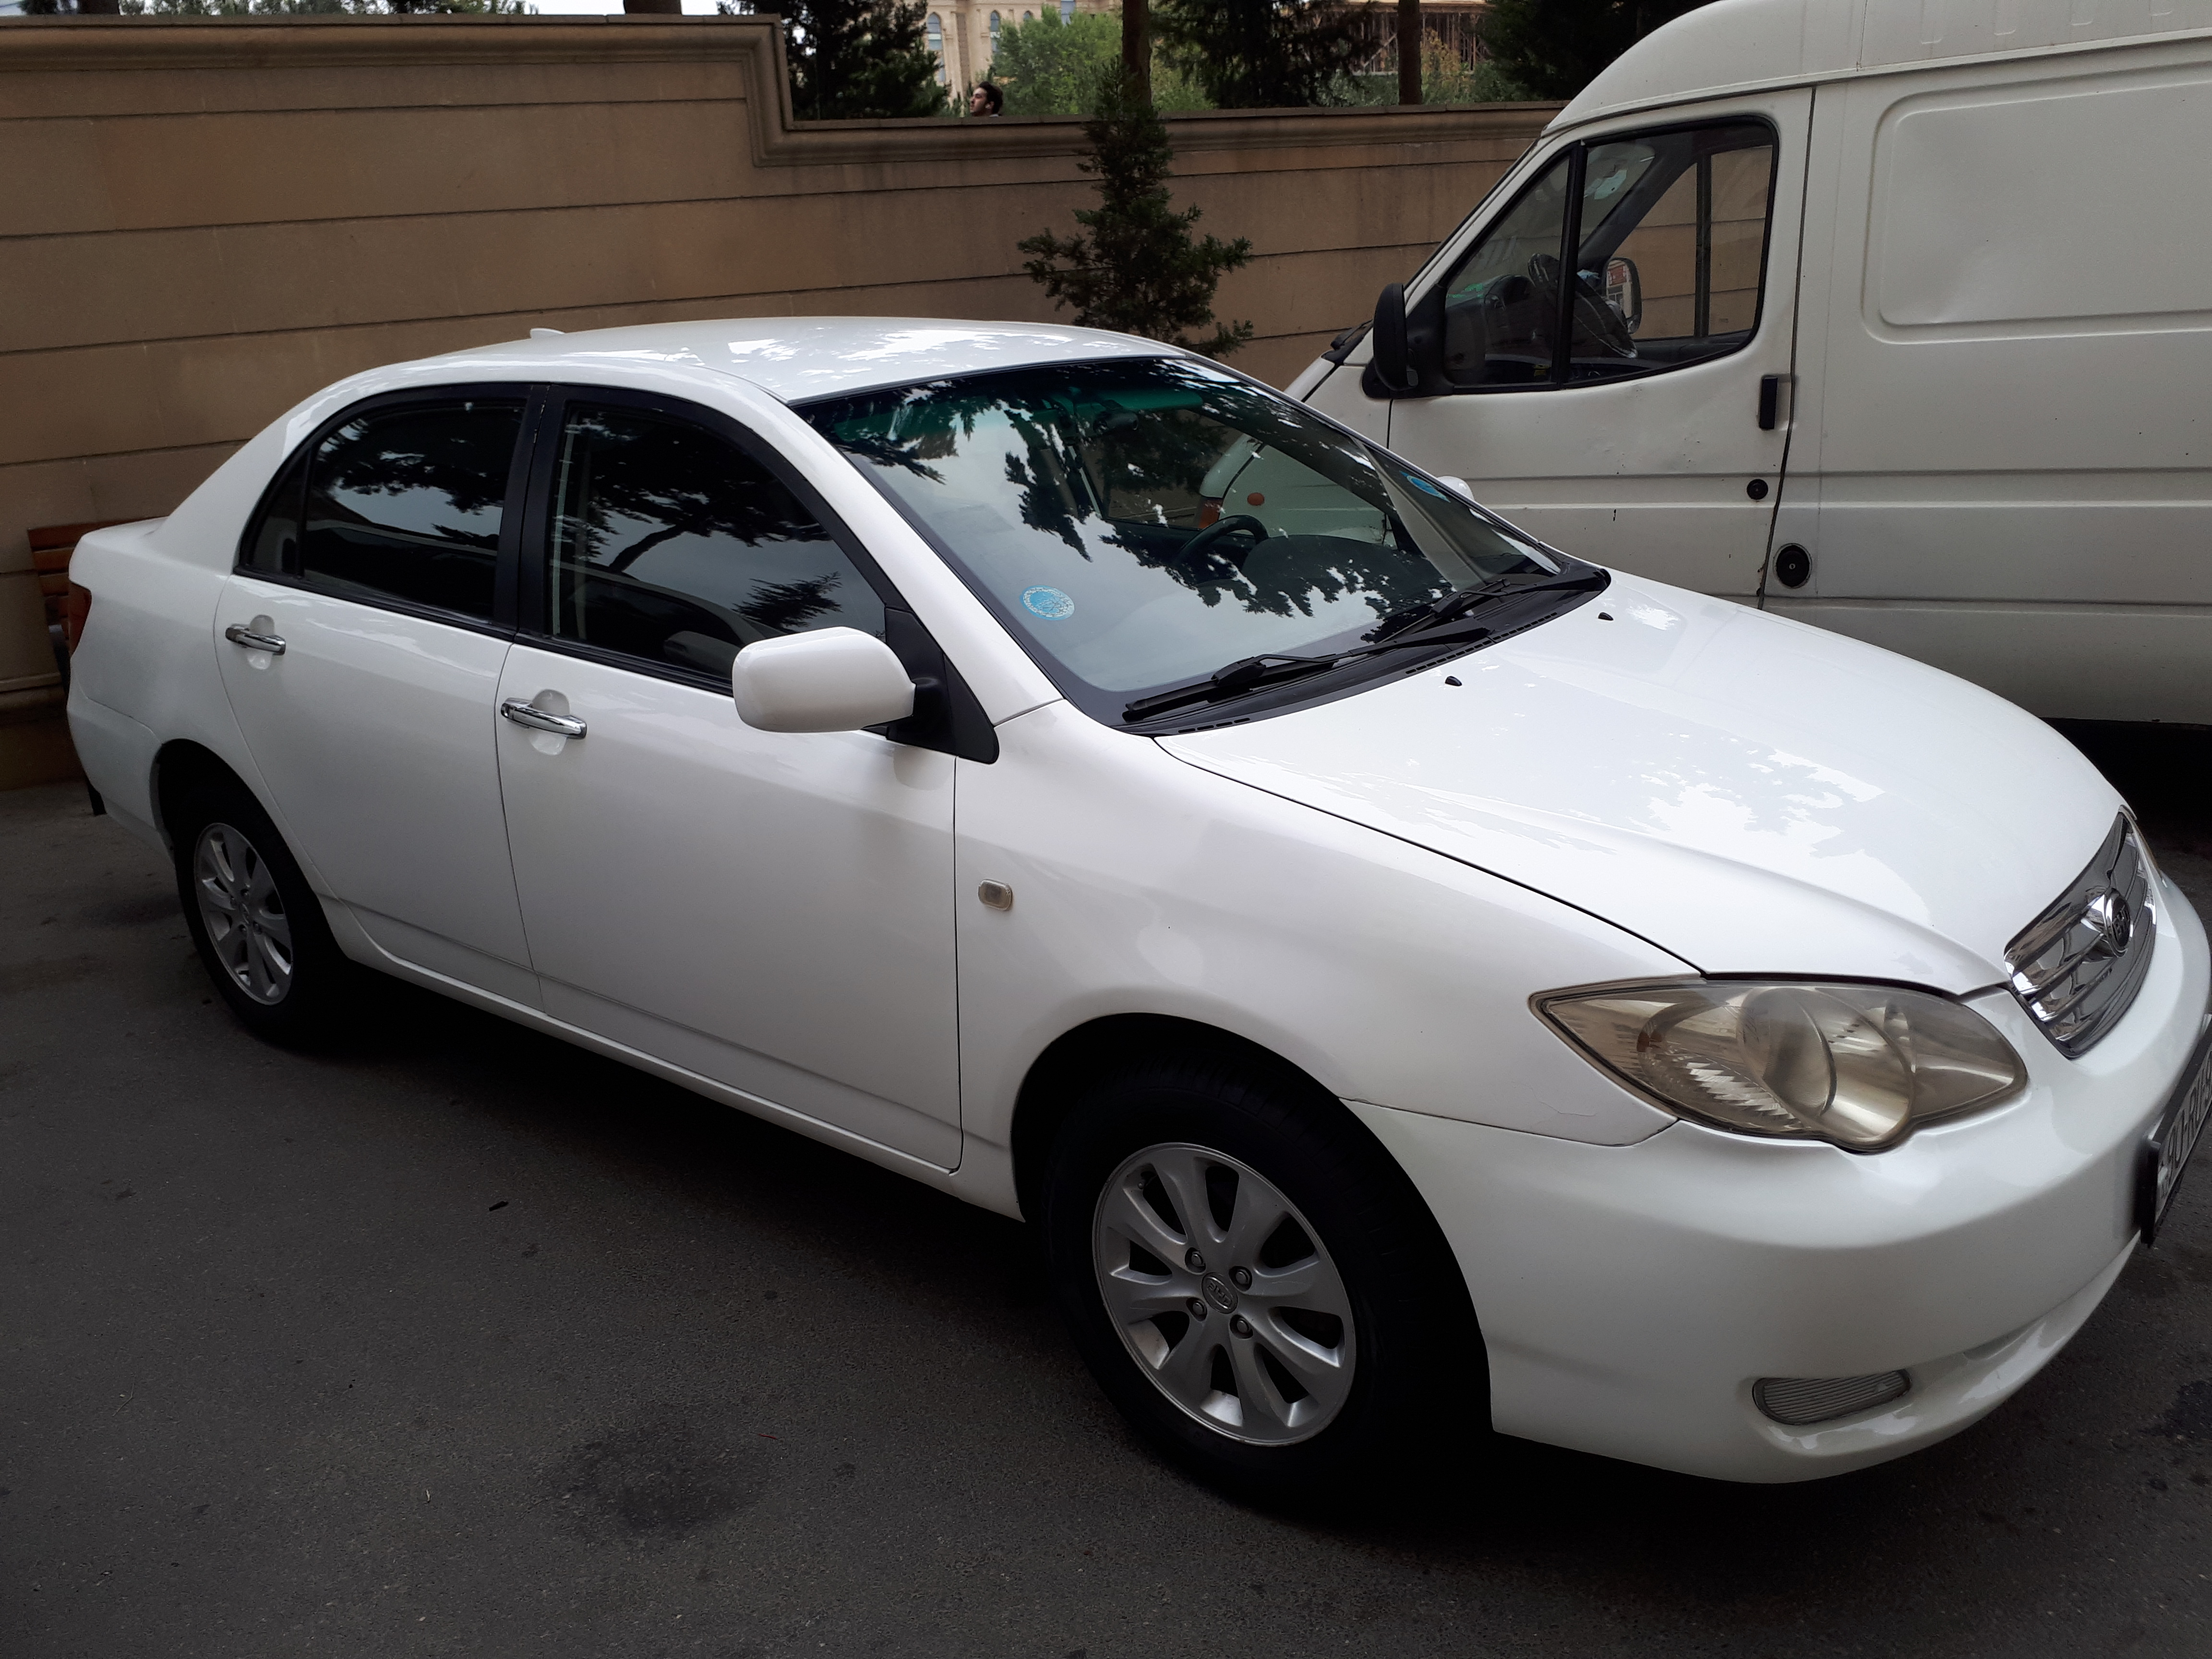 BYD F3 1.5(lt) 2012 Second hand  $8500